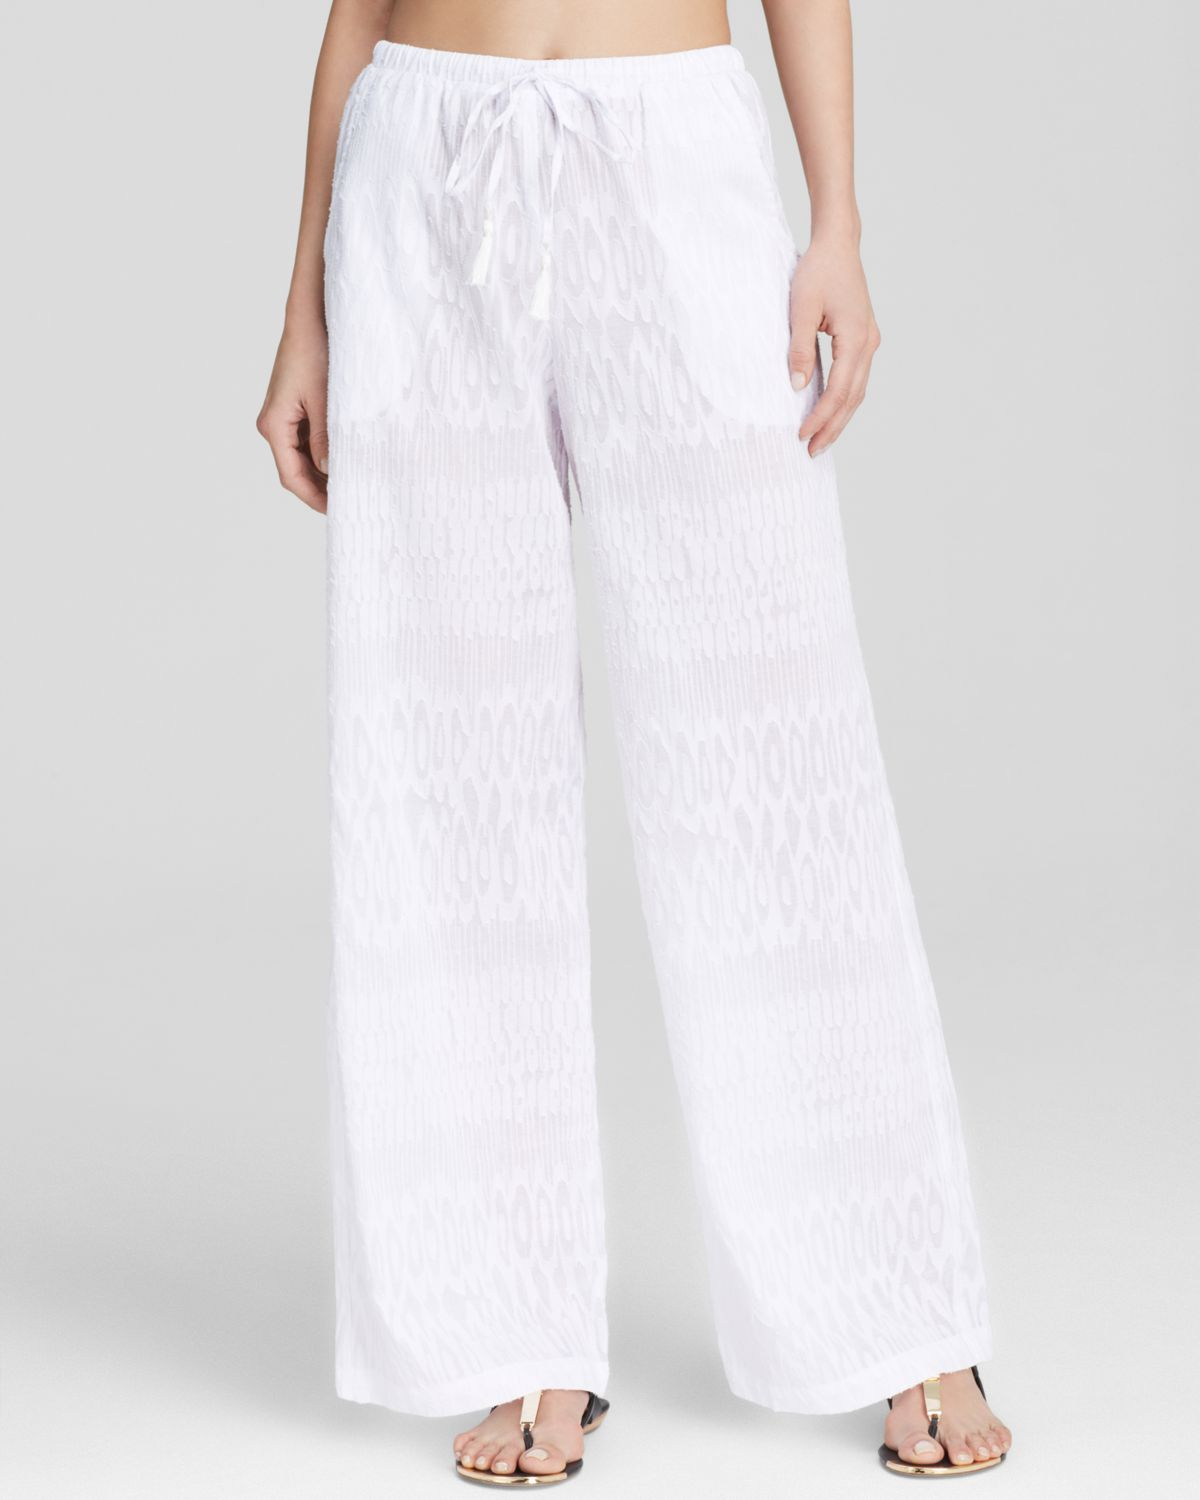 e7518b55b Tommy Bahama Beach Cover Up Pants in White - Lyst